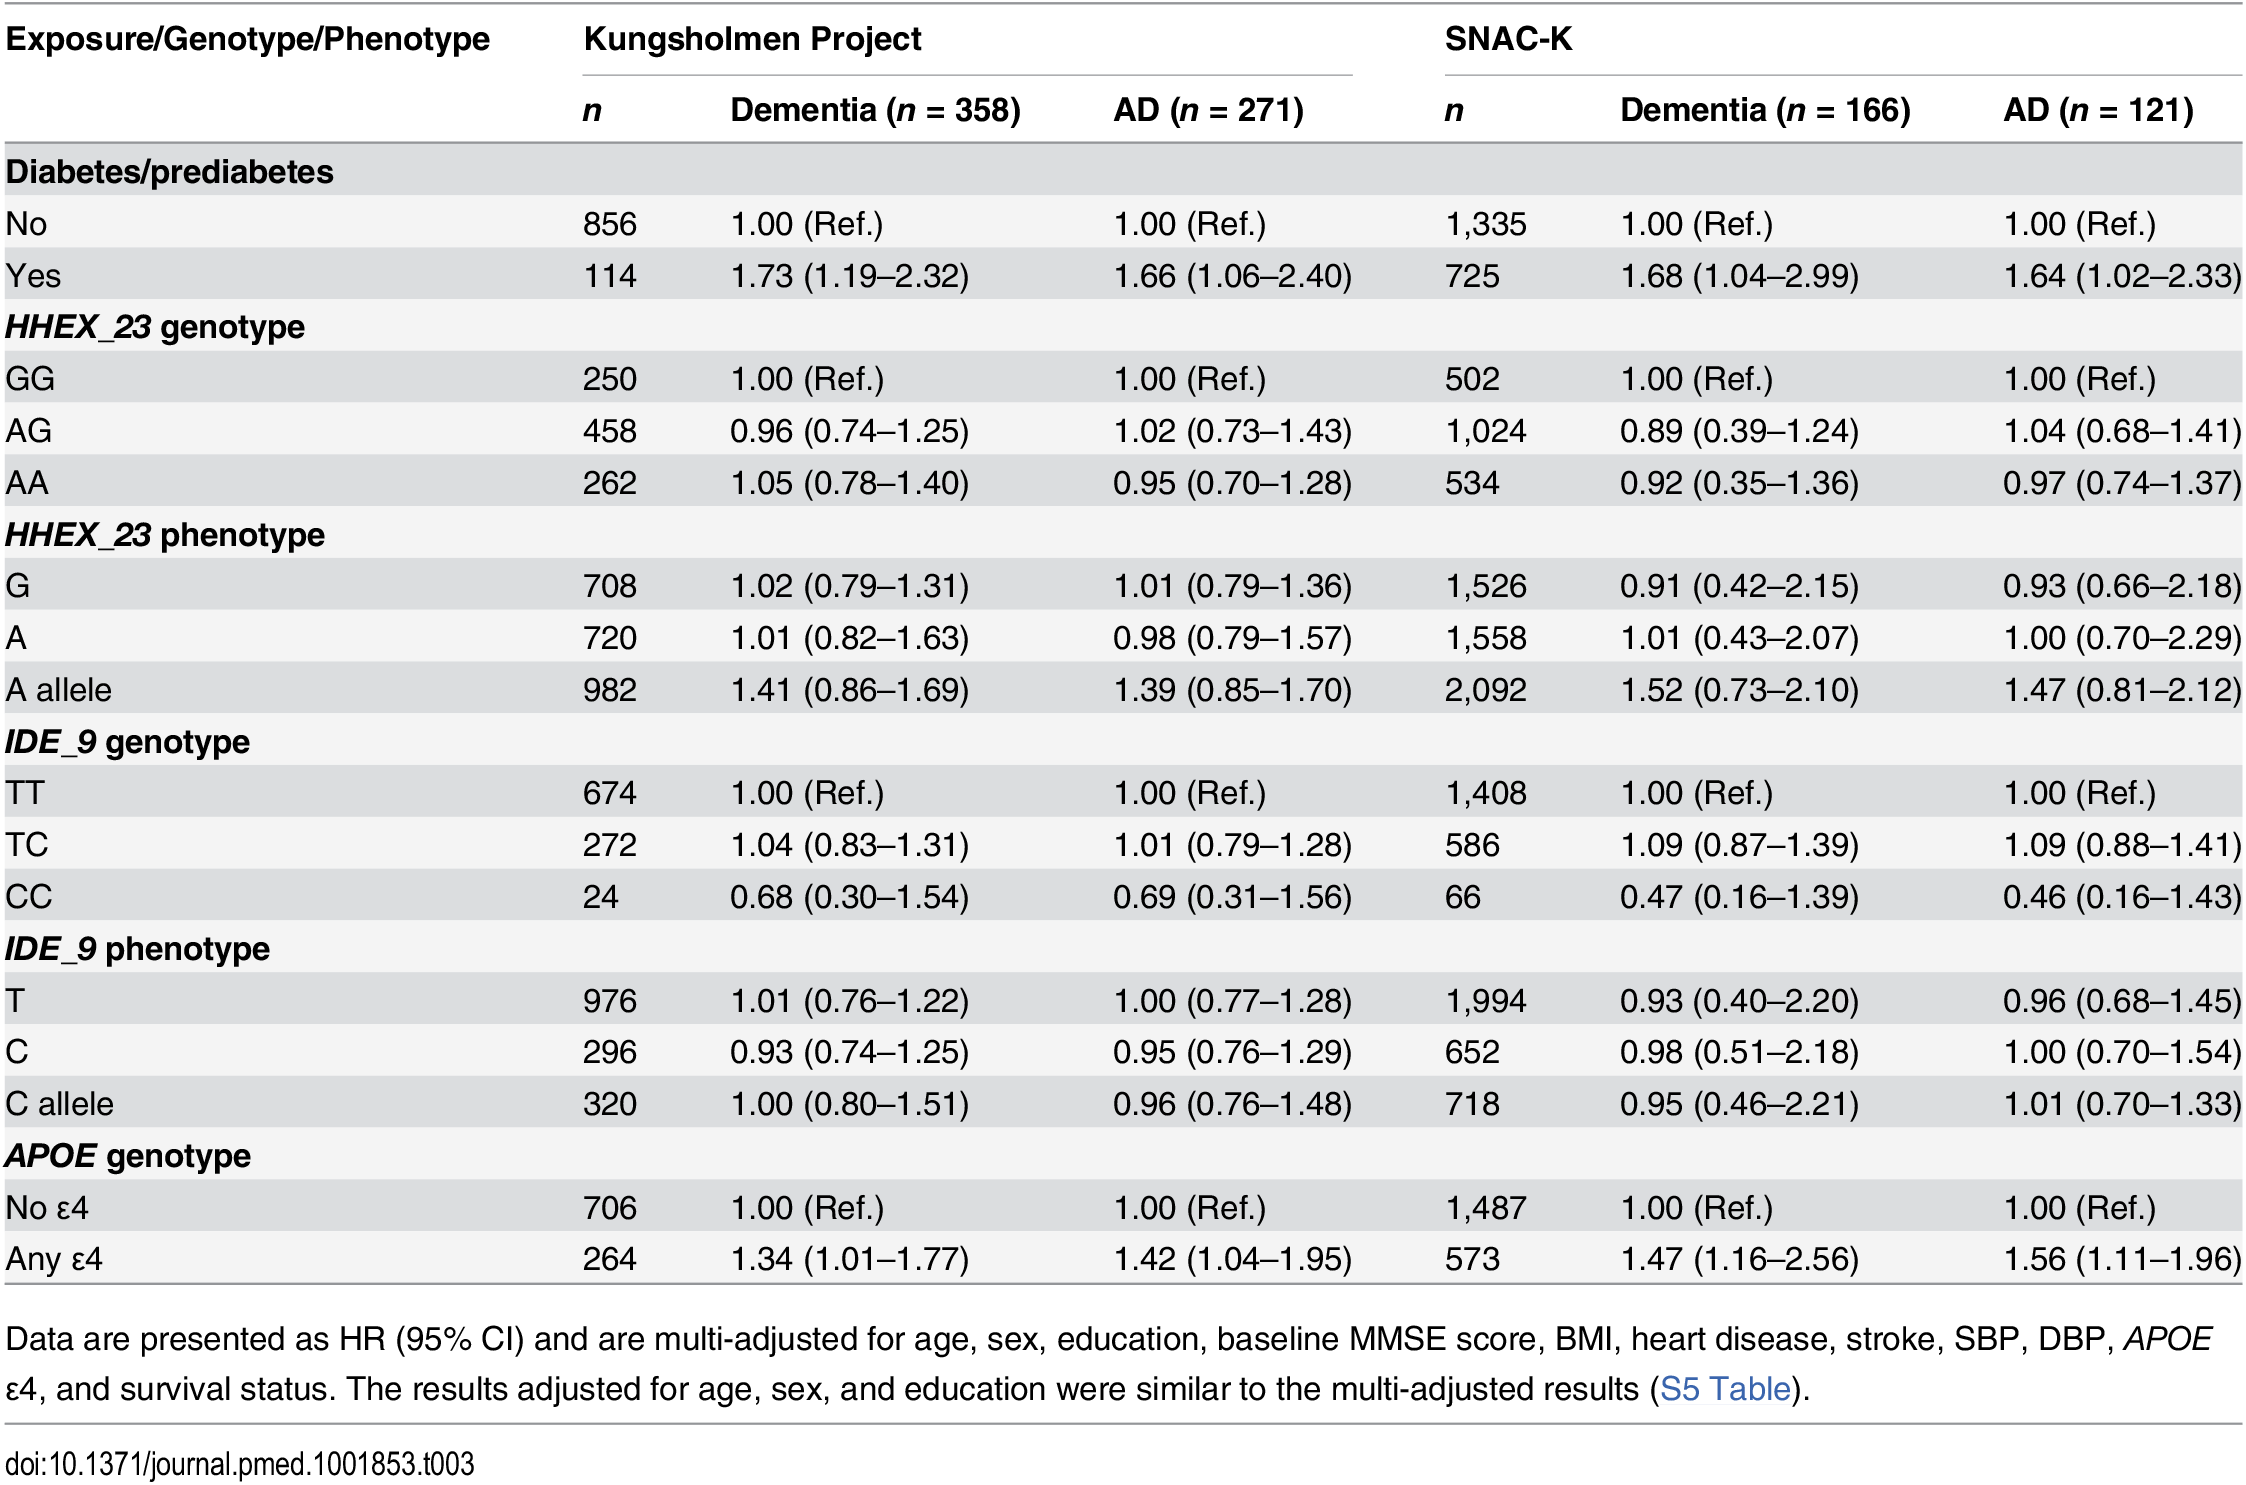 Multi-adjusted hazard ratios and 95% CIs of dementia and Alzheimer disease related to diabetes, <i>HHEX_23</i>, <i>IDE_9</i>, and <i>APOE</i> in the Kungsholmen Project and SNAC-K.